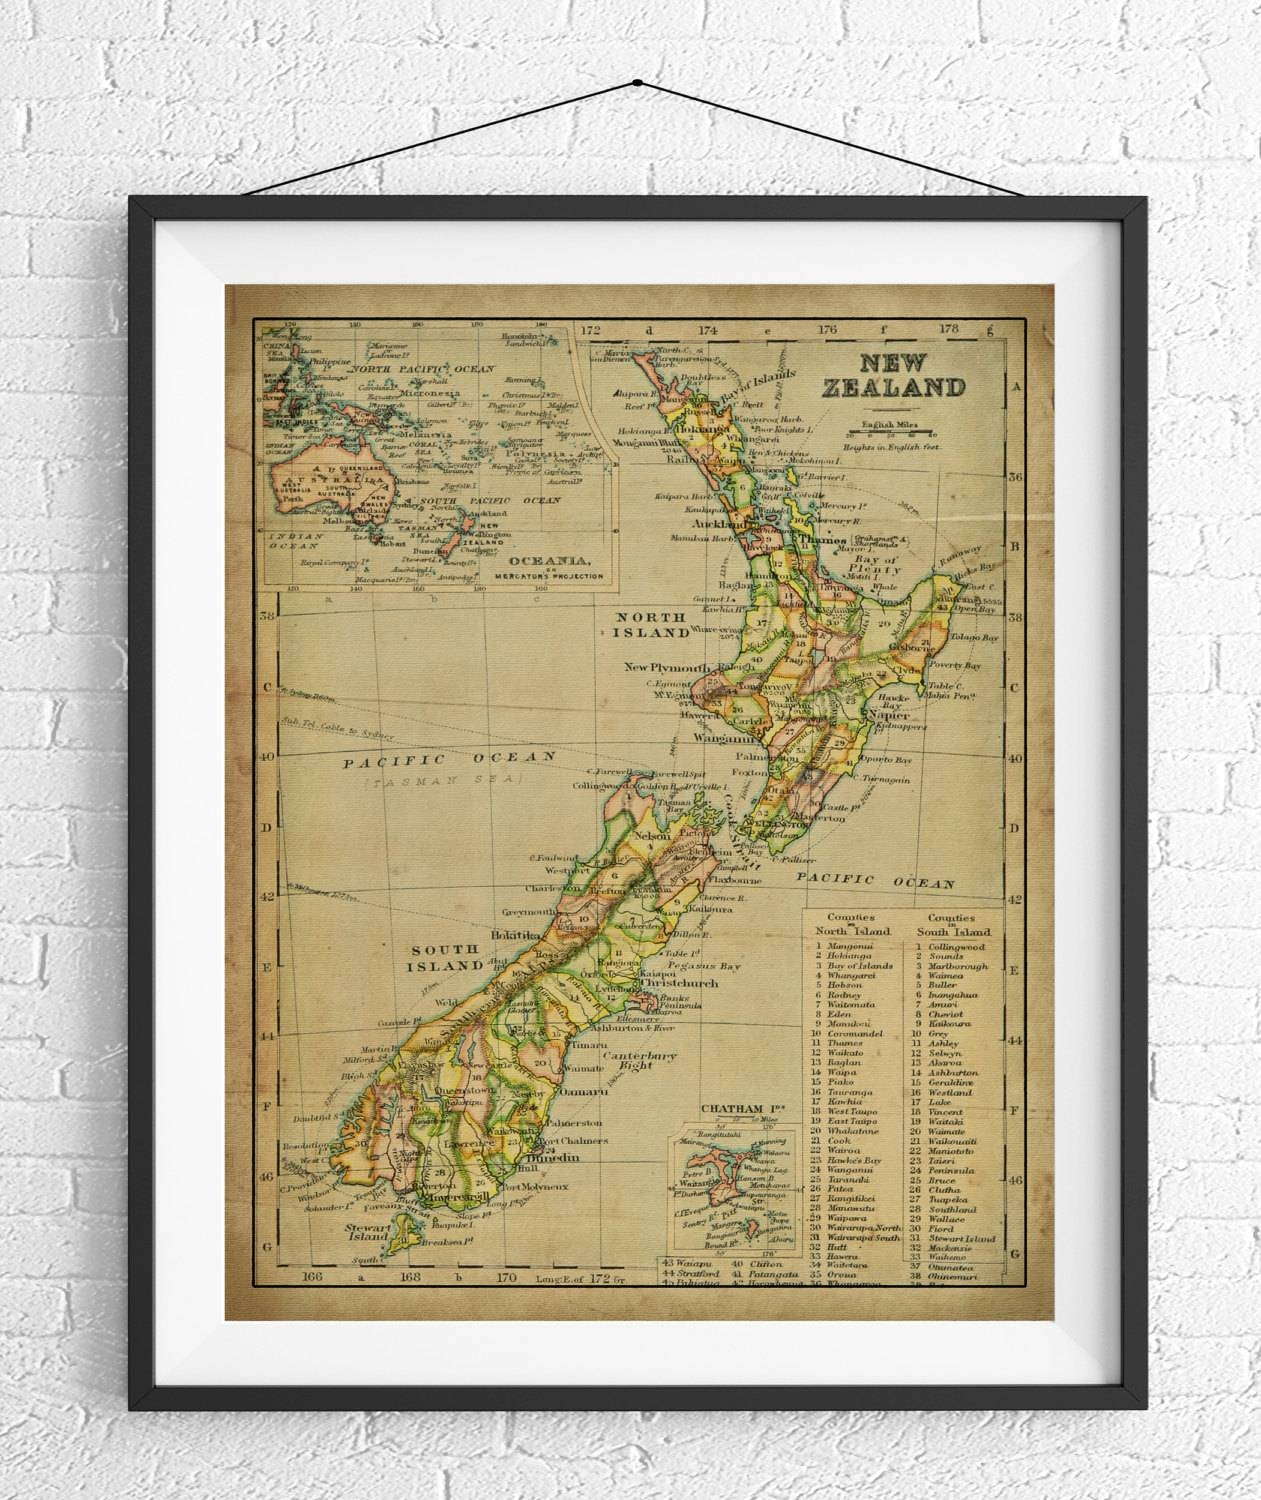 New Zealand Map Print, Vintage Map Art, Antique Map Wall Decor Pertaining To Current New Zealand Map Wall Art (View 7 of 20)